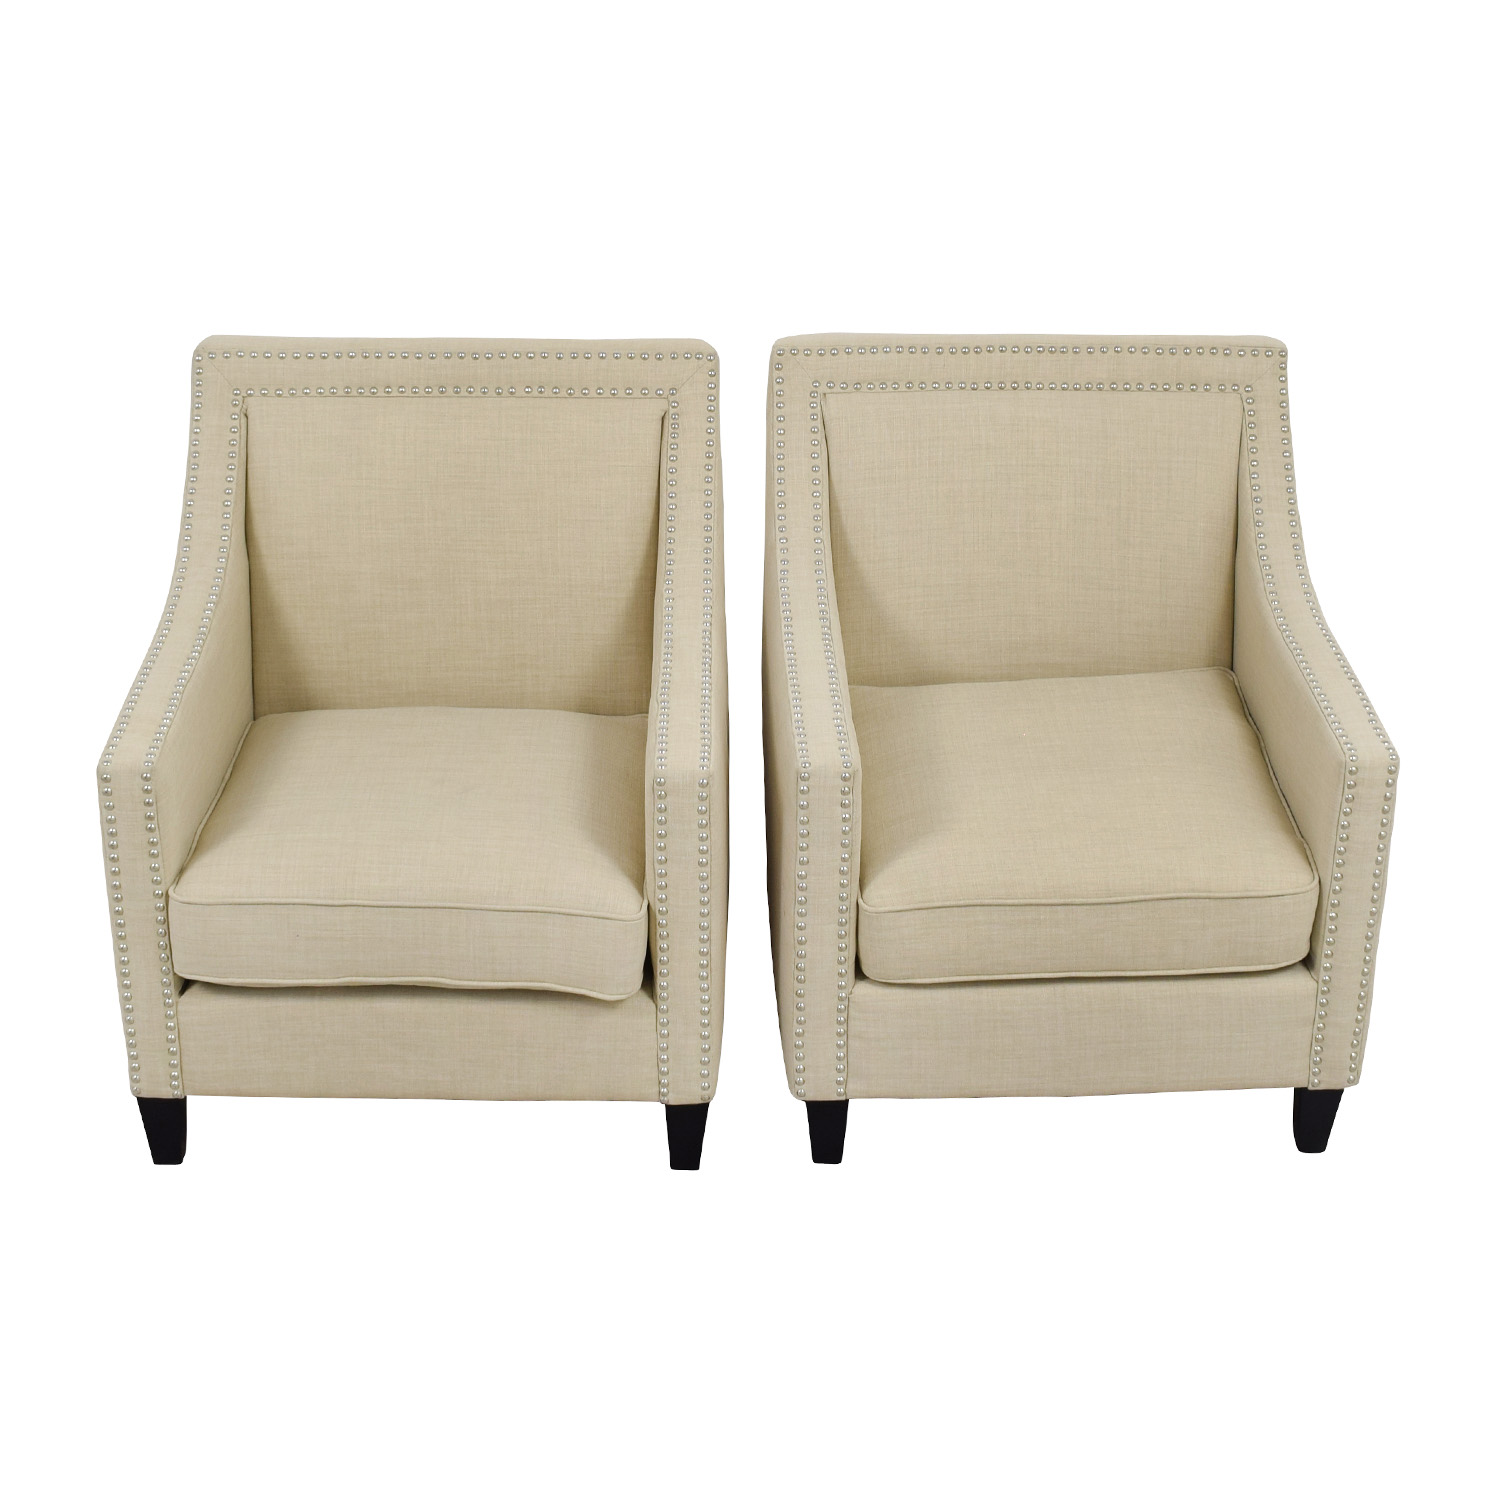 accent sofa microsuede slipcovers 67 off studded beige arm chairs